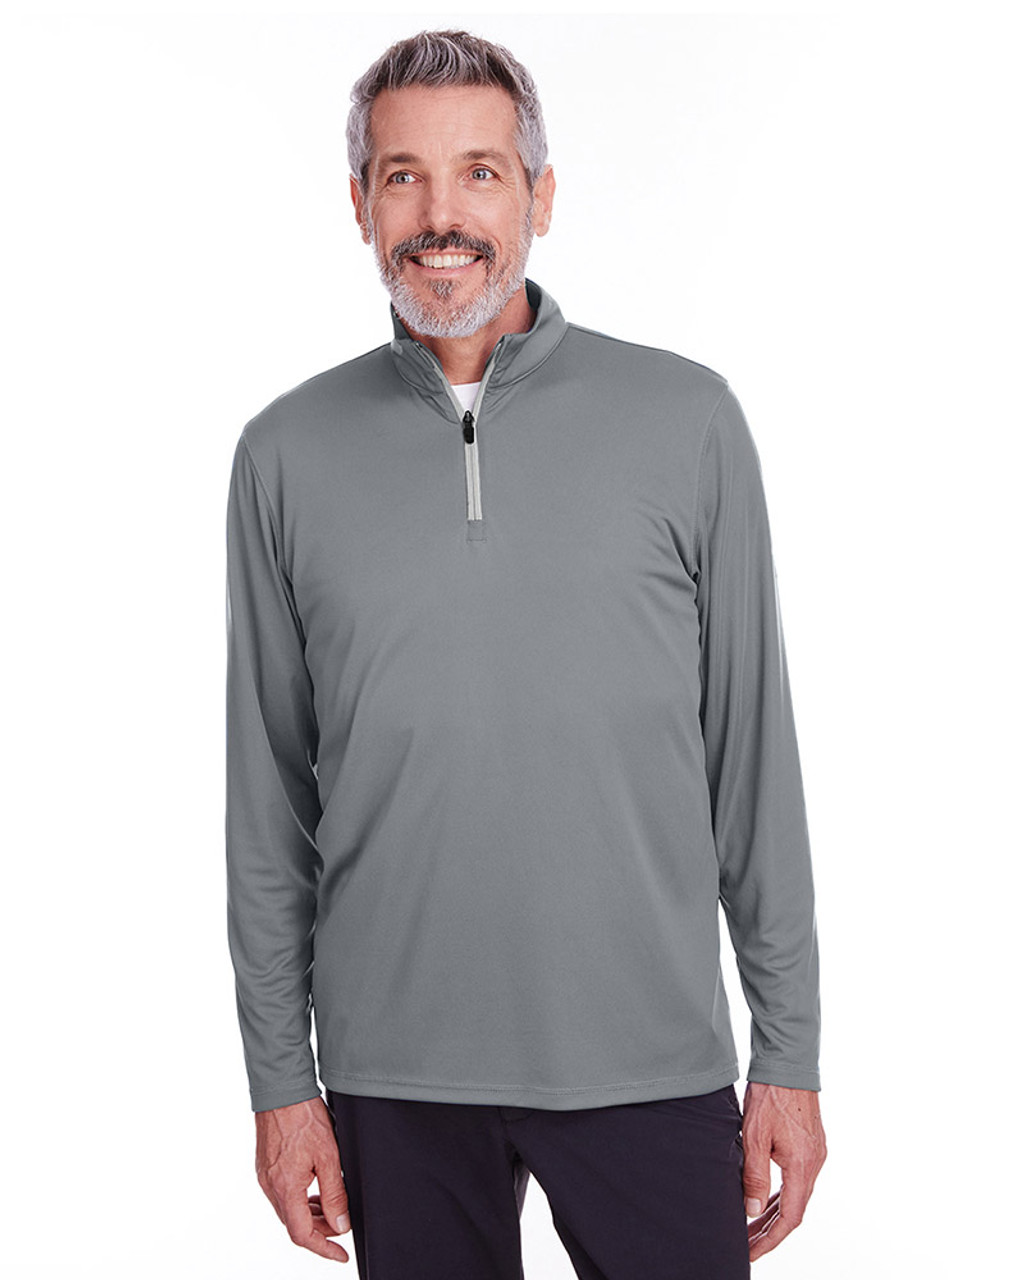 Quiet Shade - 596807 Puma Golf Men's Icon Quarter-Zip Shirt | Blankclothing.ca